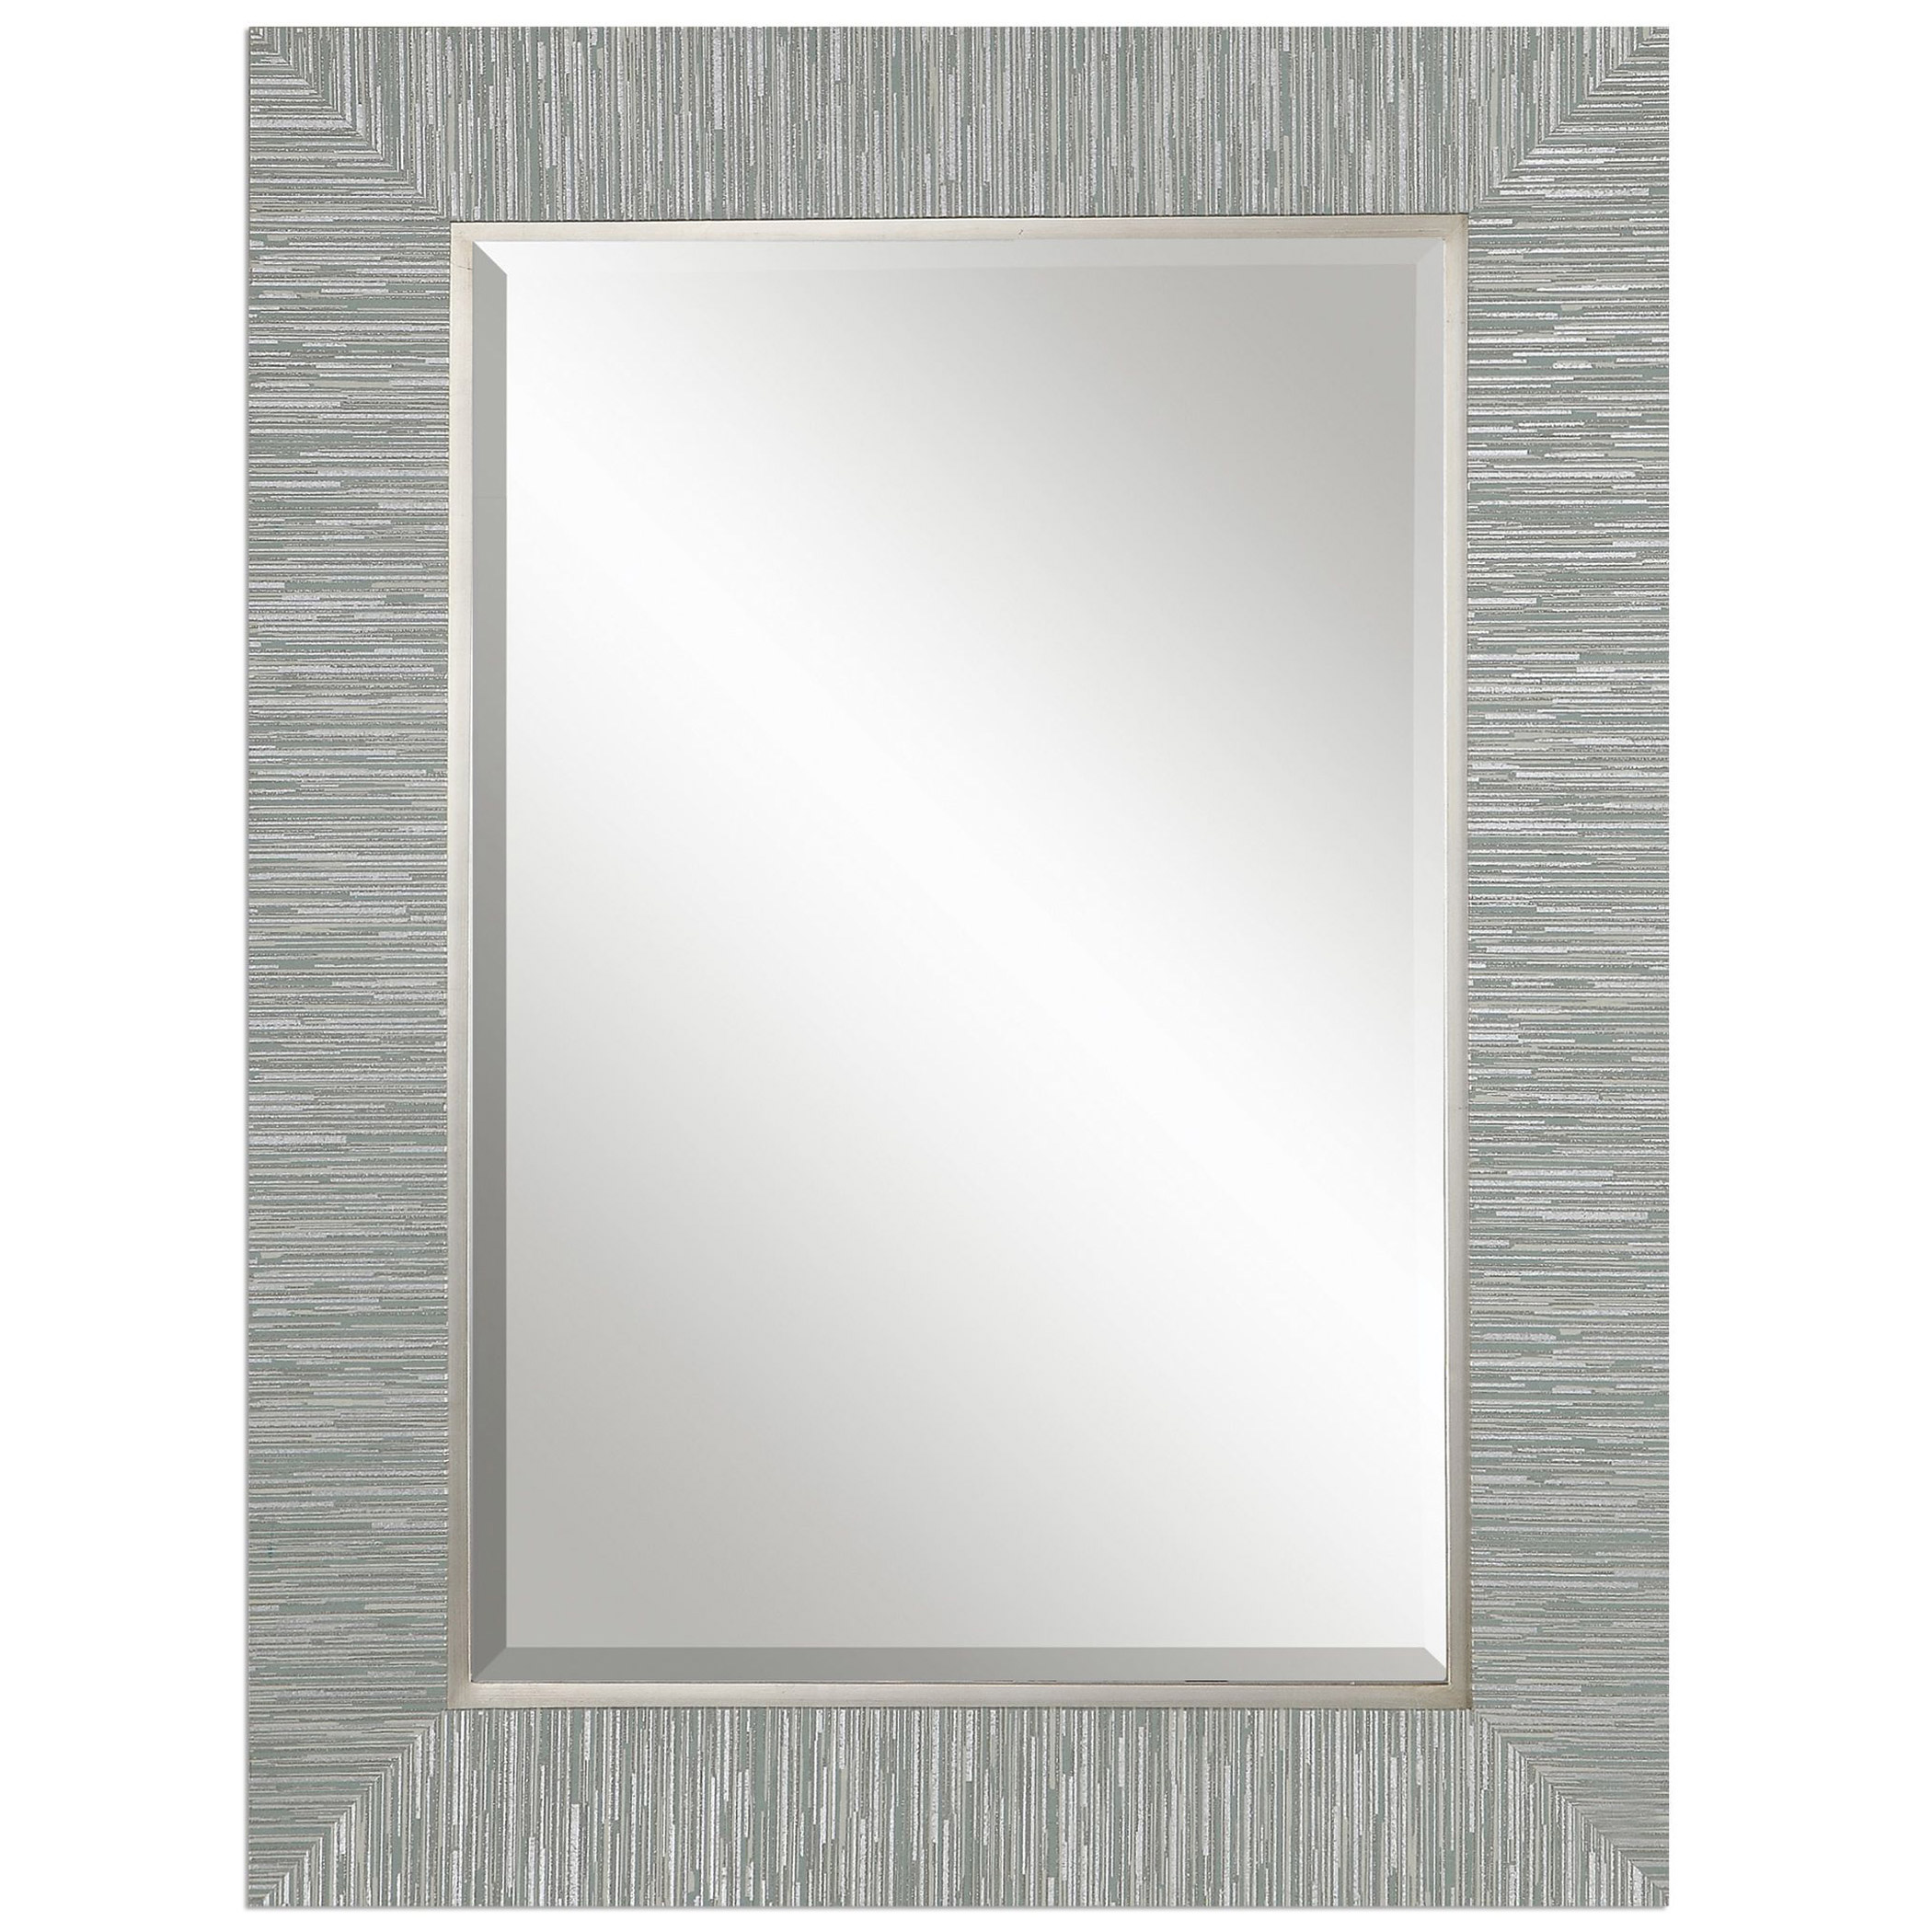 Designer Mirrors - Eclectic Mirrors | Kathy Kuo Home